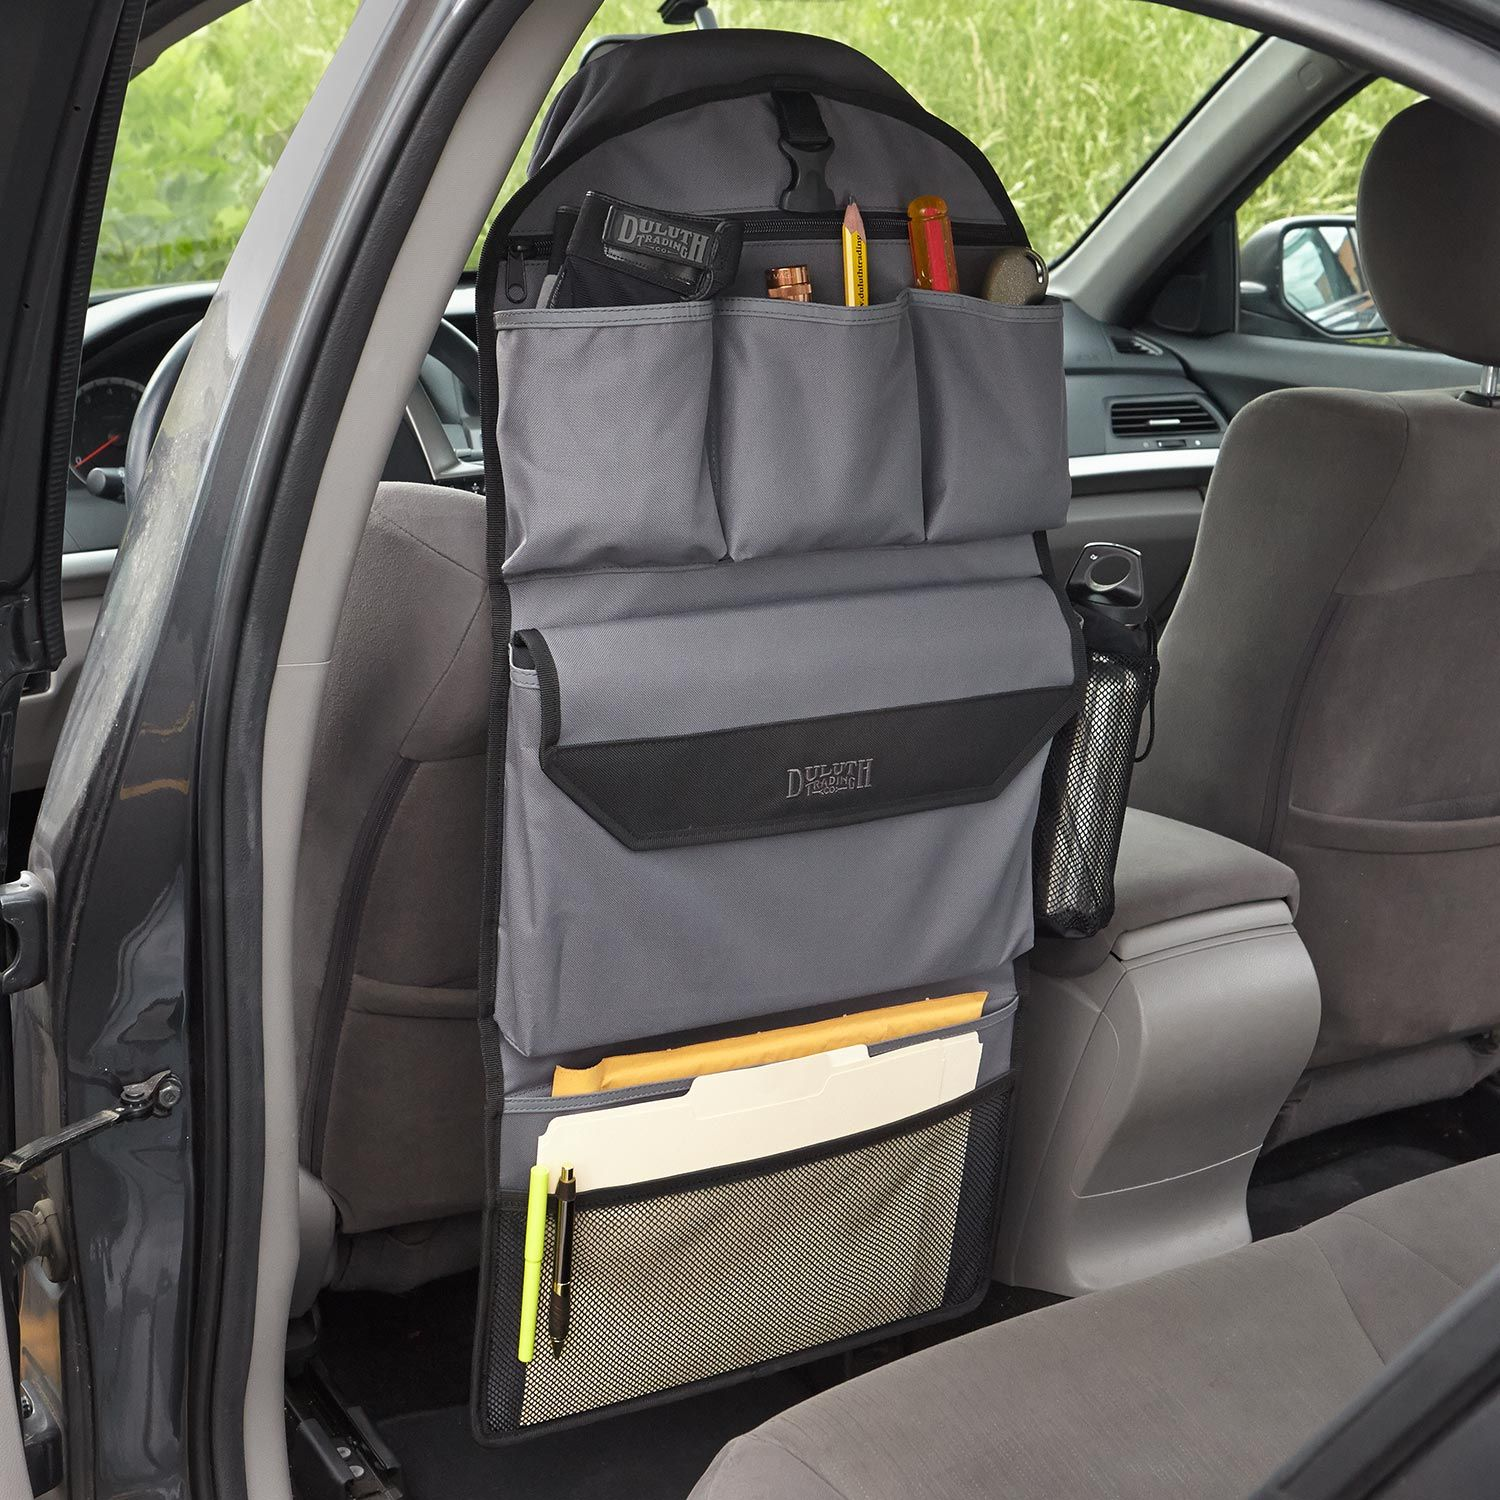 Seat Back Organizer Duluth Trading This might be a simple way to